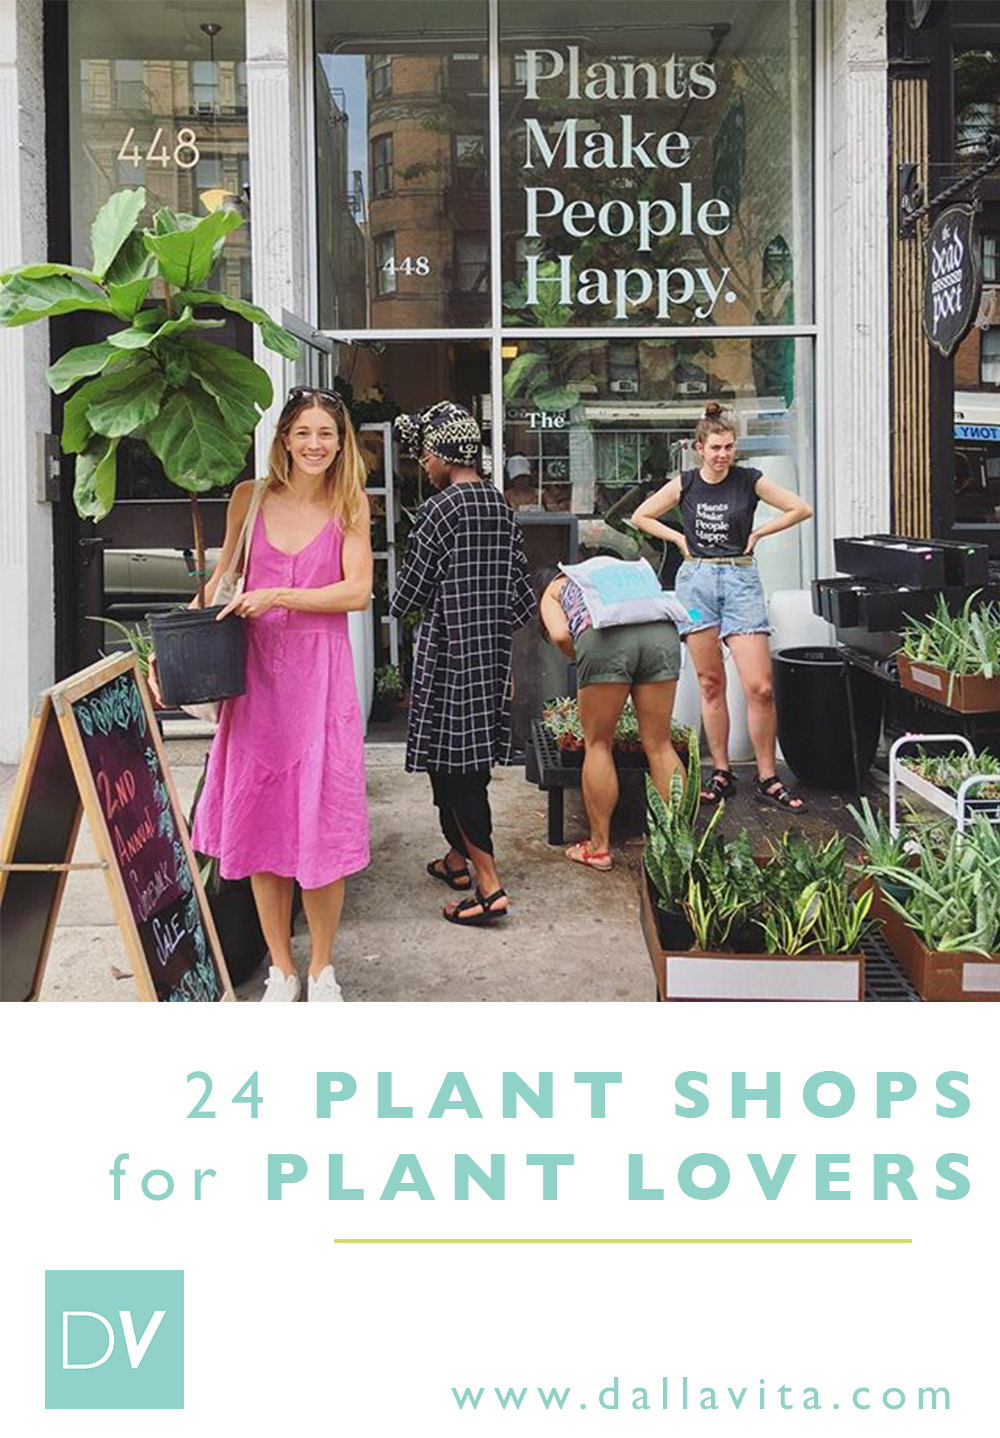 24 Plant Shops for Plant Lovers - Dalla Vita